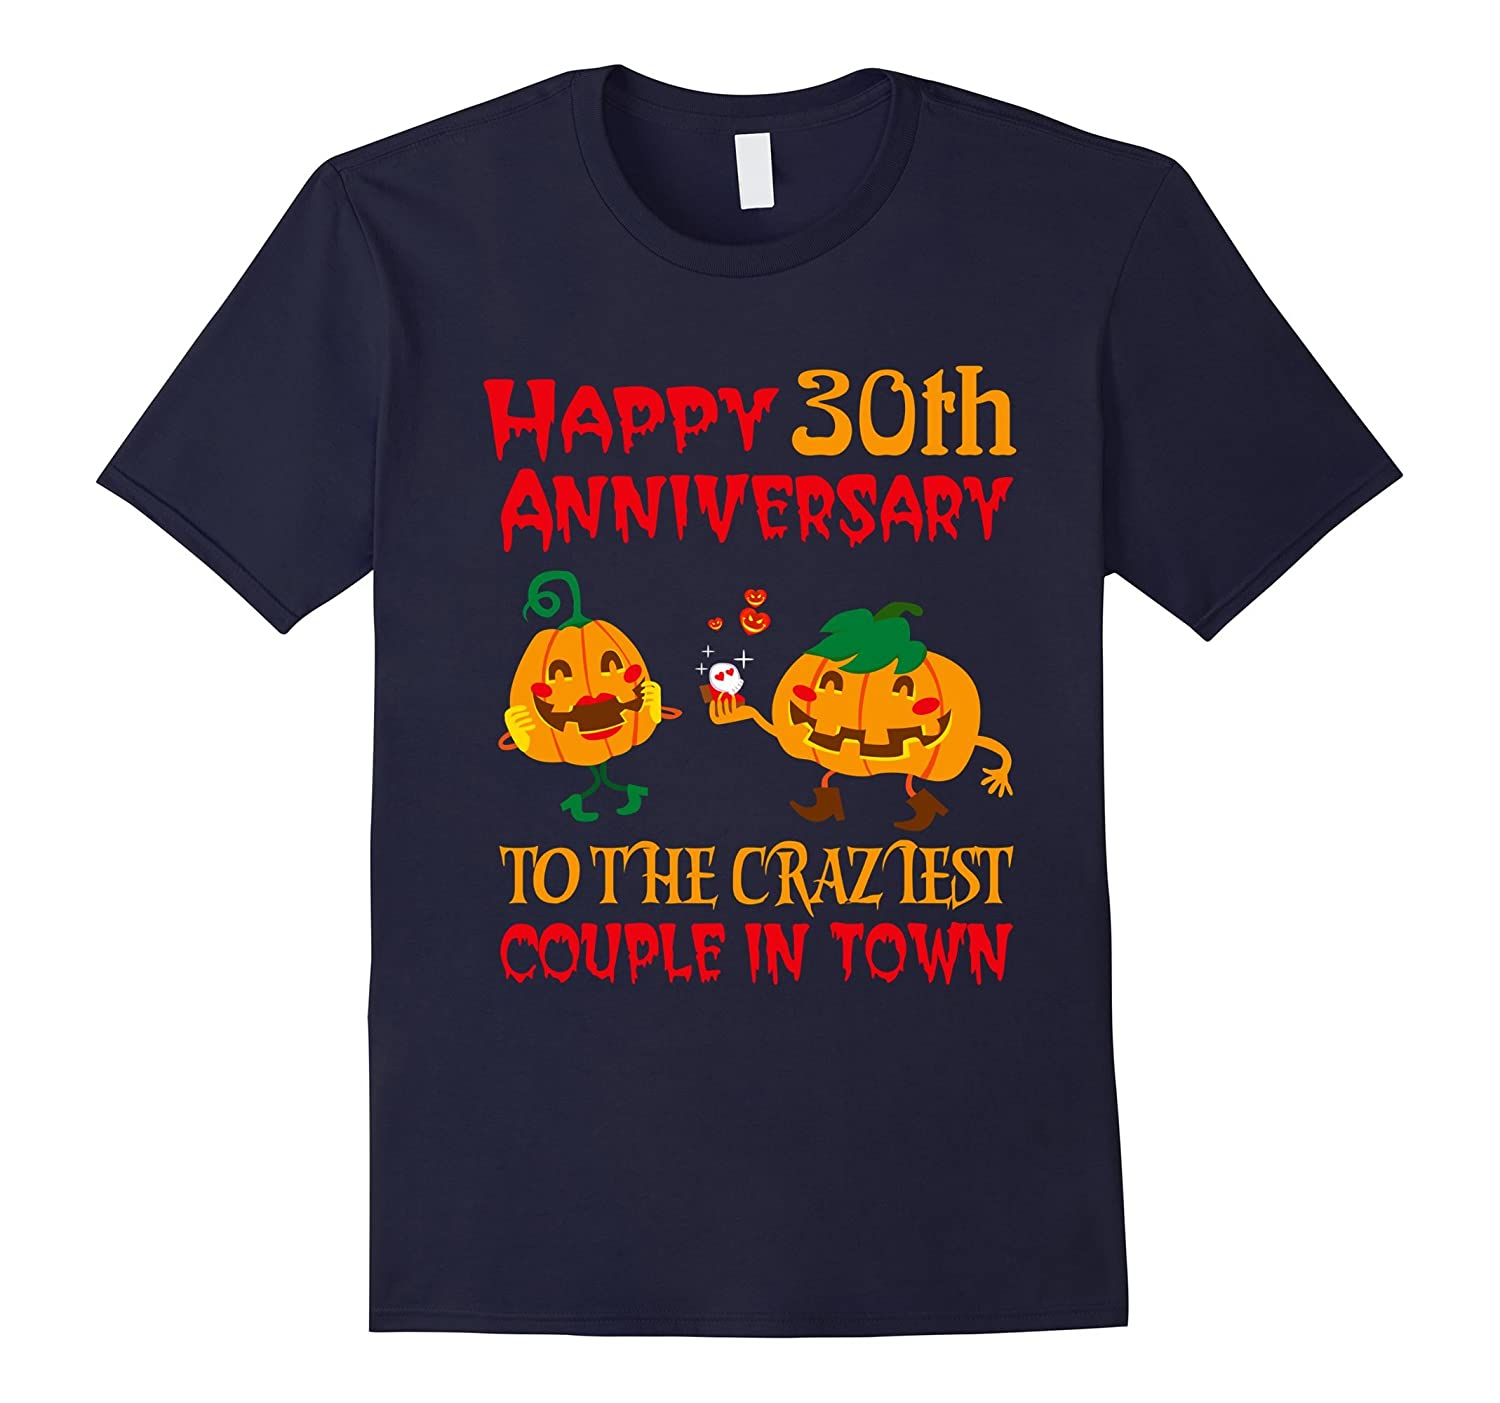 30th Wedding Anniversary T-Shirt For Couples On Halloween.-FL